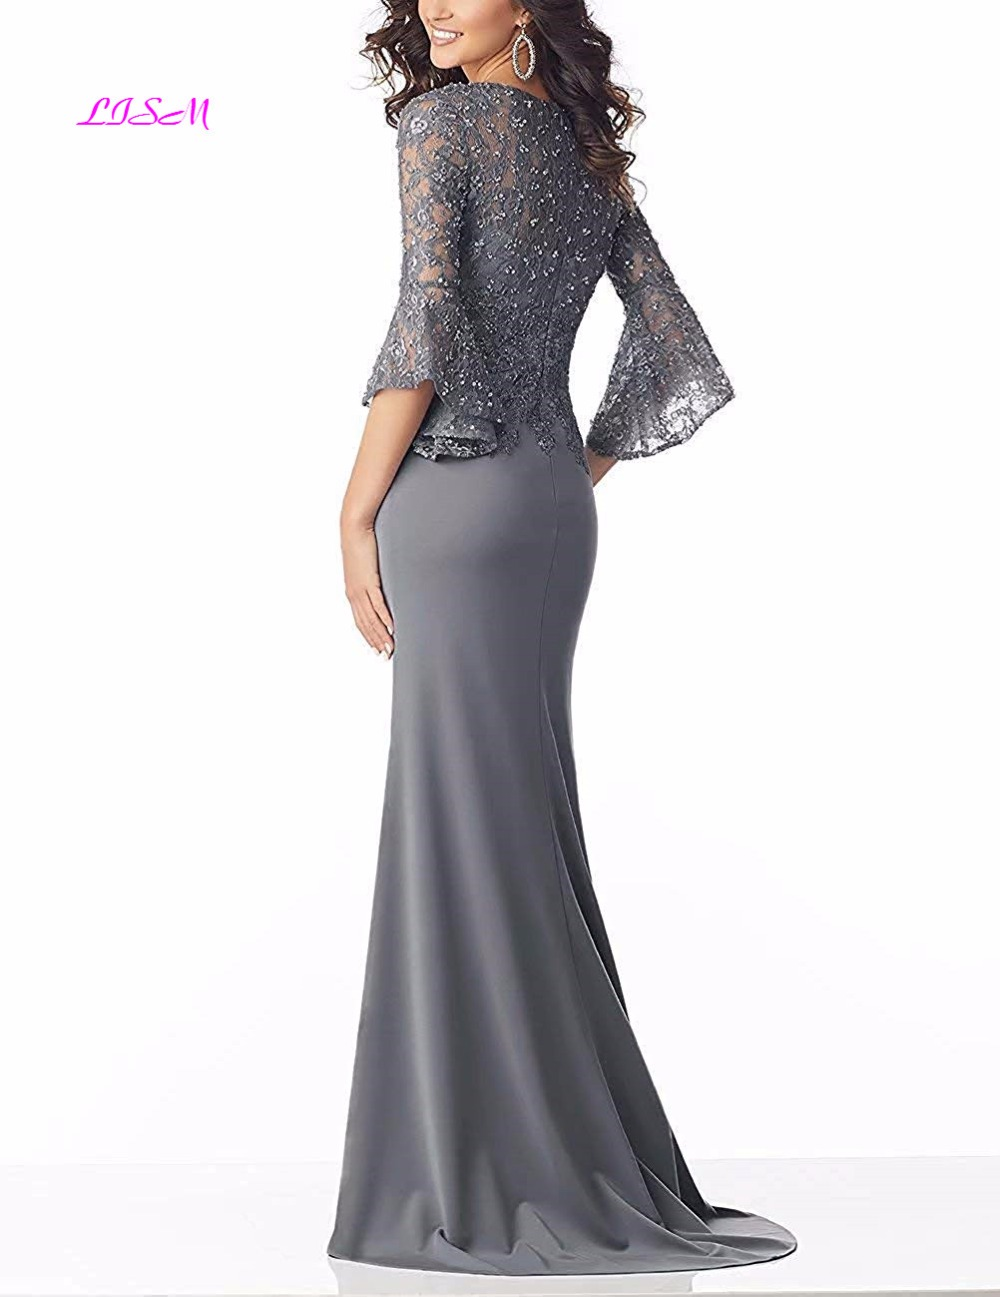 Deep V Neck Half Sleeves Long Evening Dresses Mermaid Lace Sequins Satin Long Party Gowns Sexy Fishtail Sweep Train Formal Dress